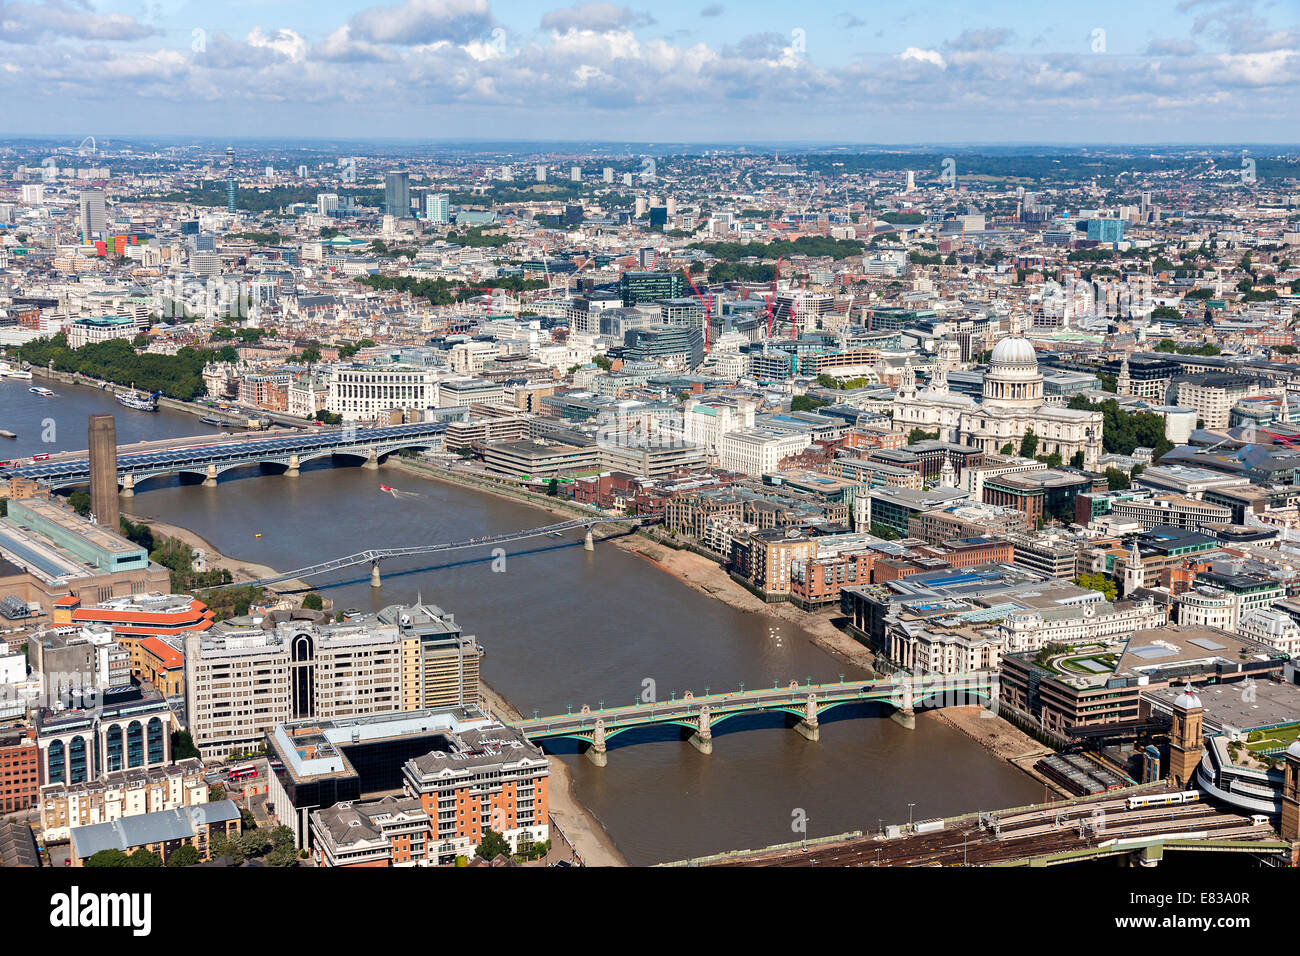 River Thames aerial view in London - Stock Image